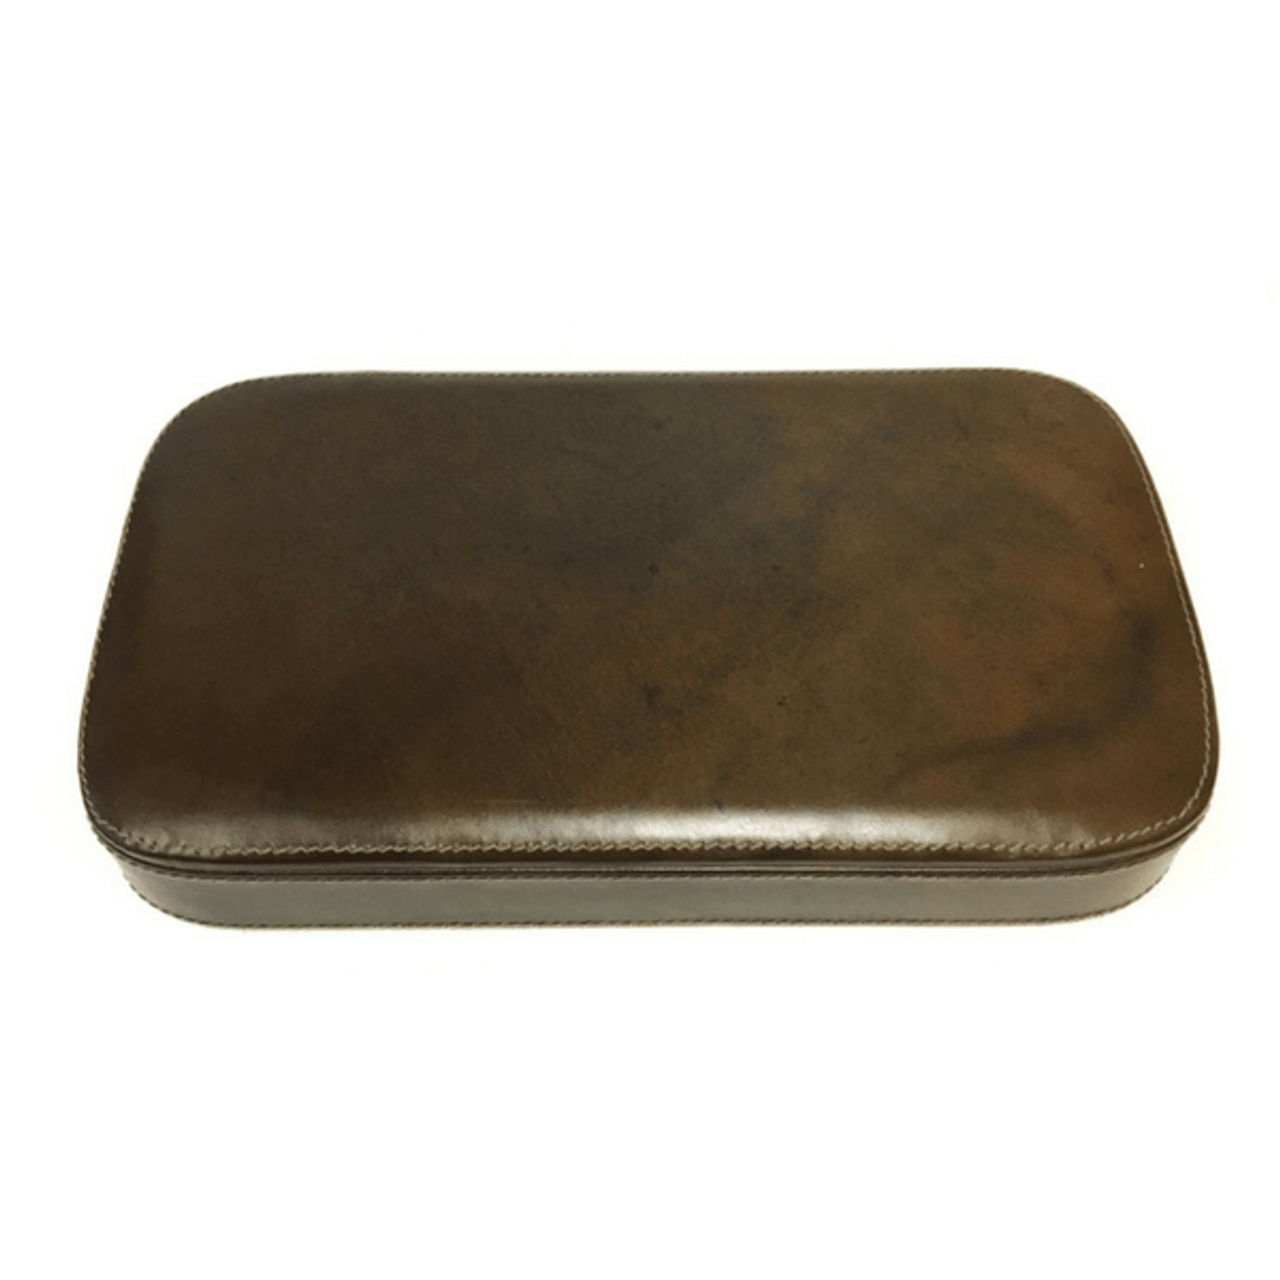 closed brown leather jewelry box